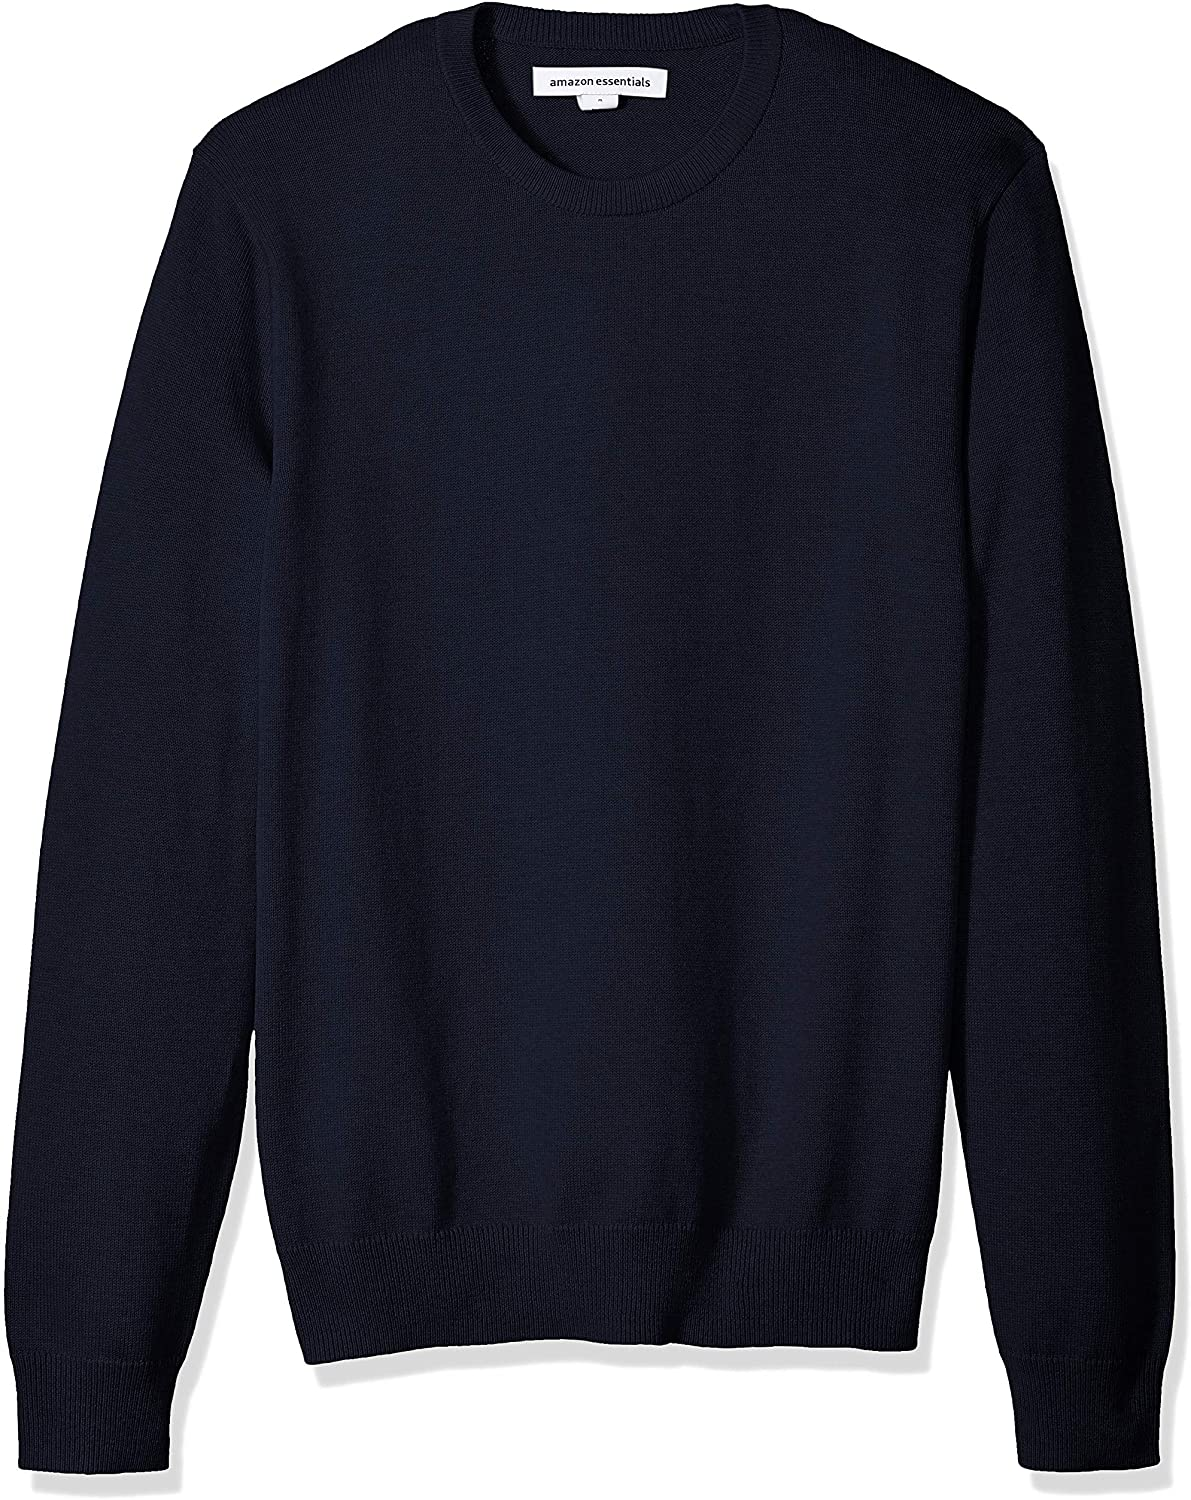 amazon-essentials-mens-crew-neck-sweater-in-navy